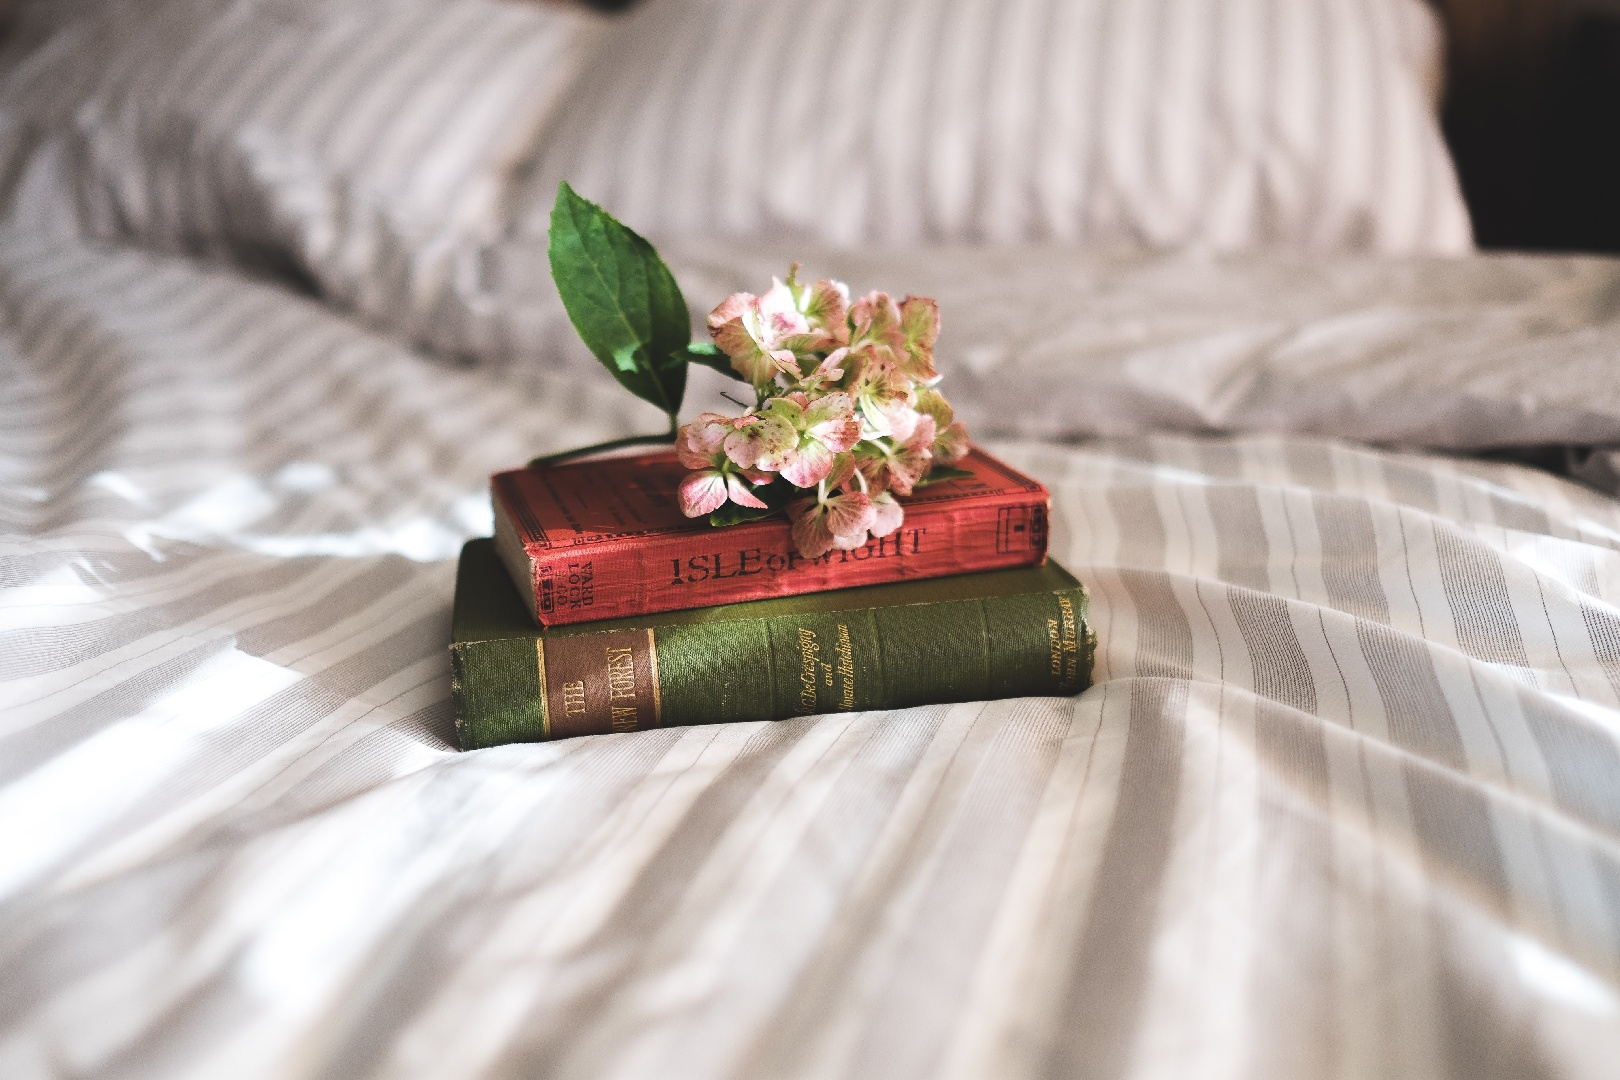 Cultivating Curiosity as a Reader: 12 Contemporary Fiction Books for Students